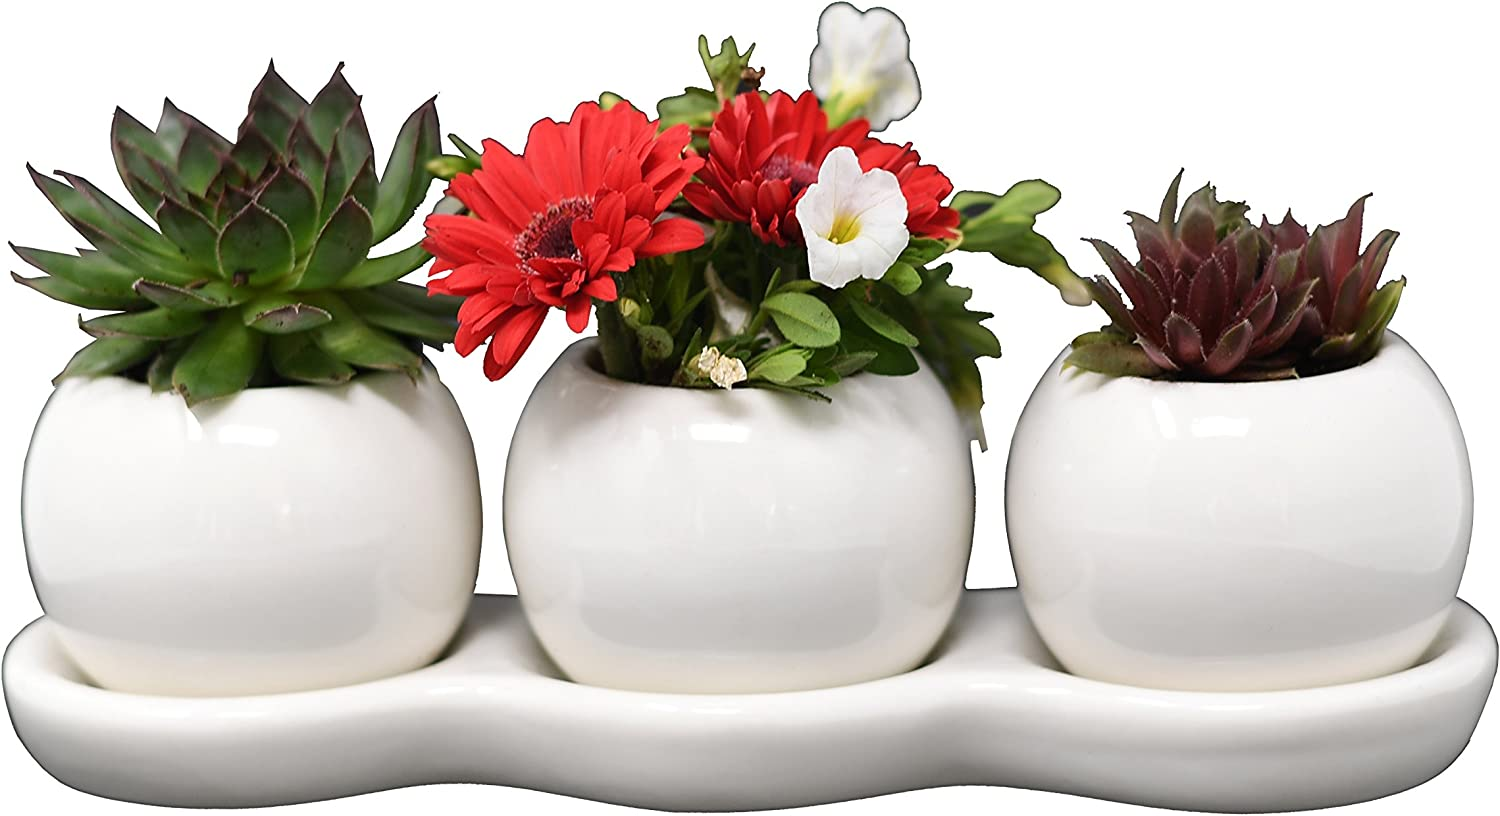 Ceramic Planters for House Plants-Plant Pots Set for Indoor & Outdoor Use (Round Set) by Arad